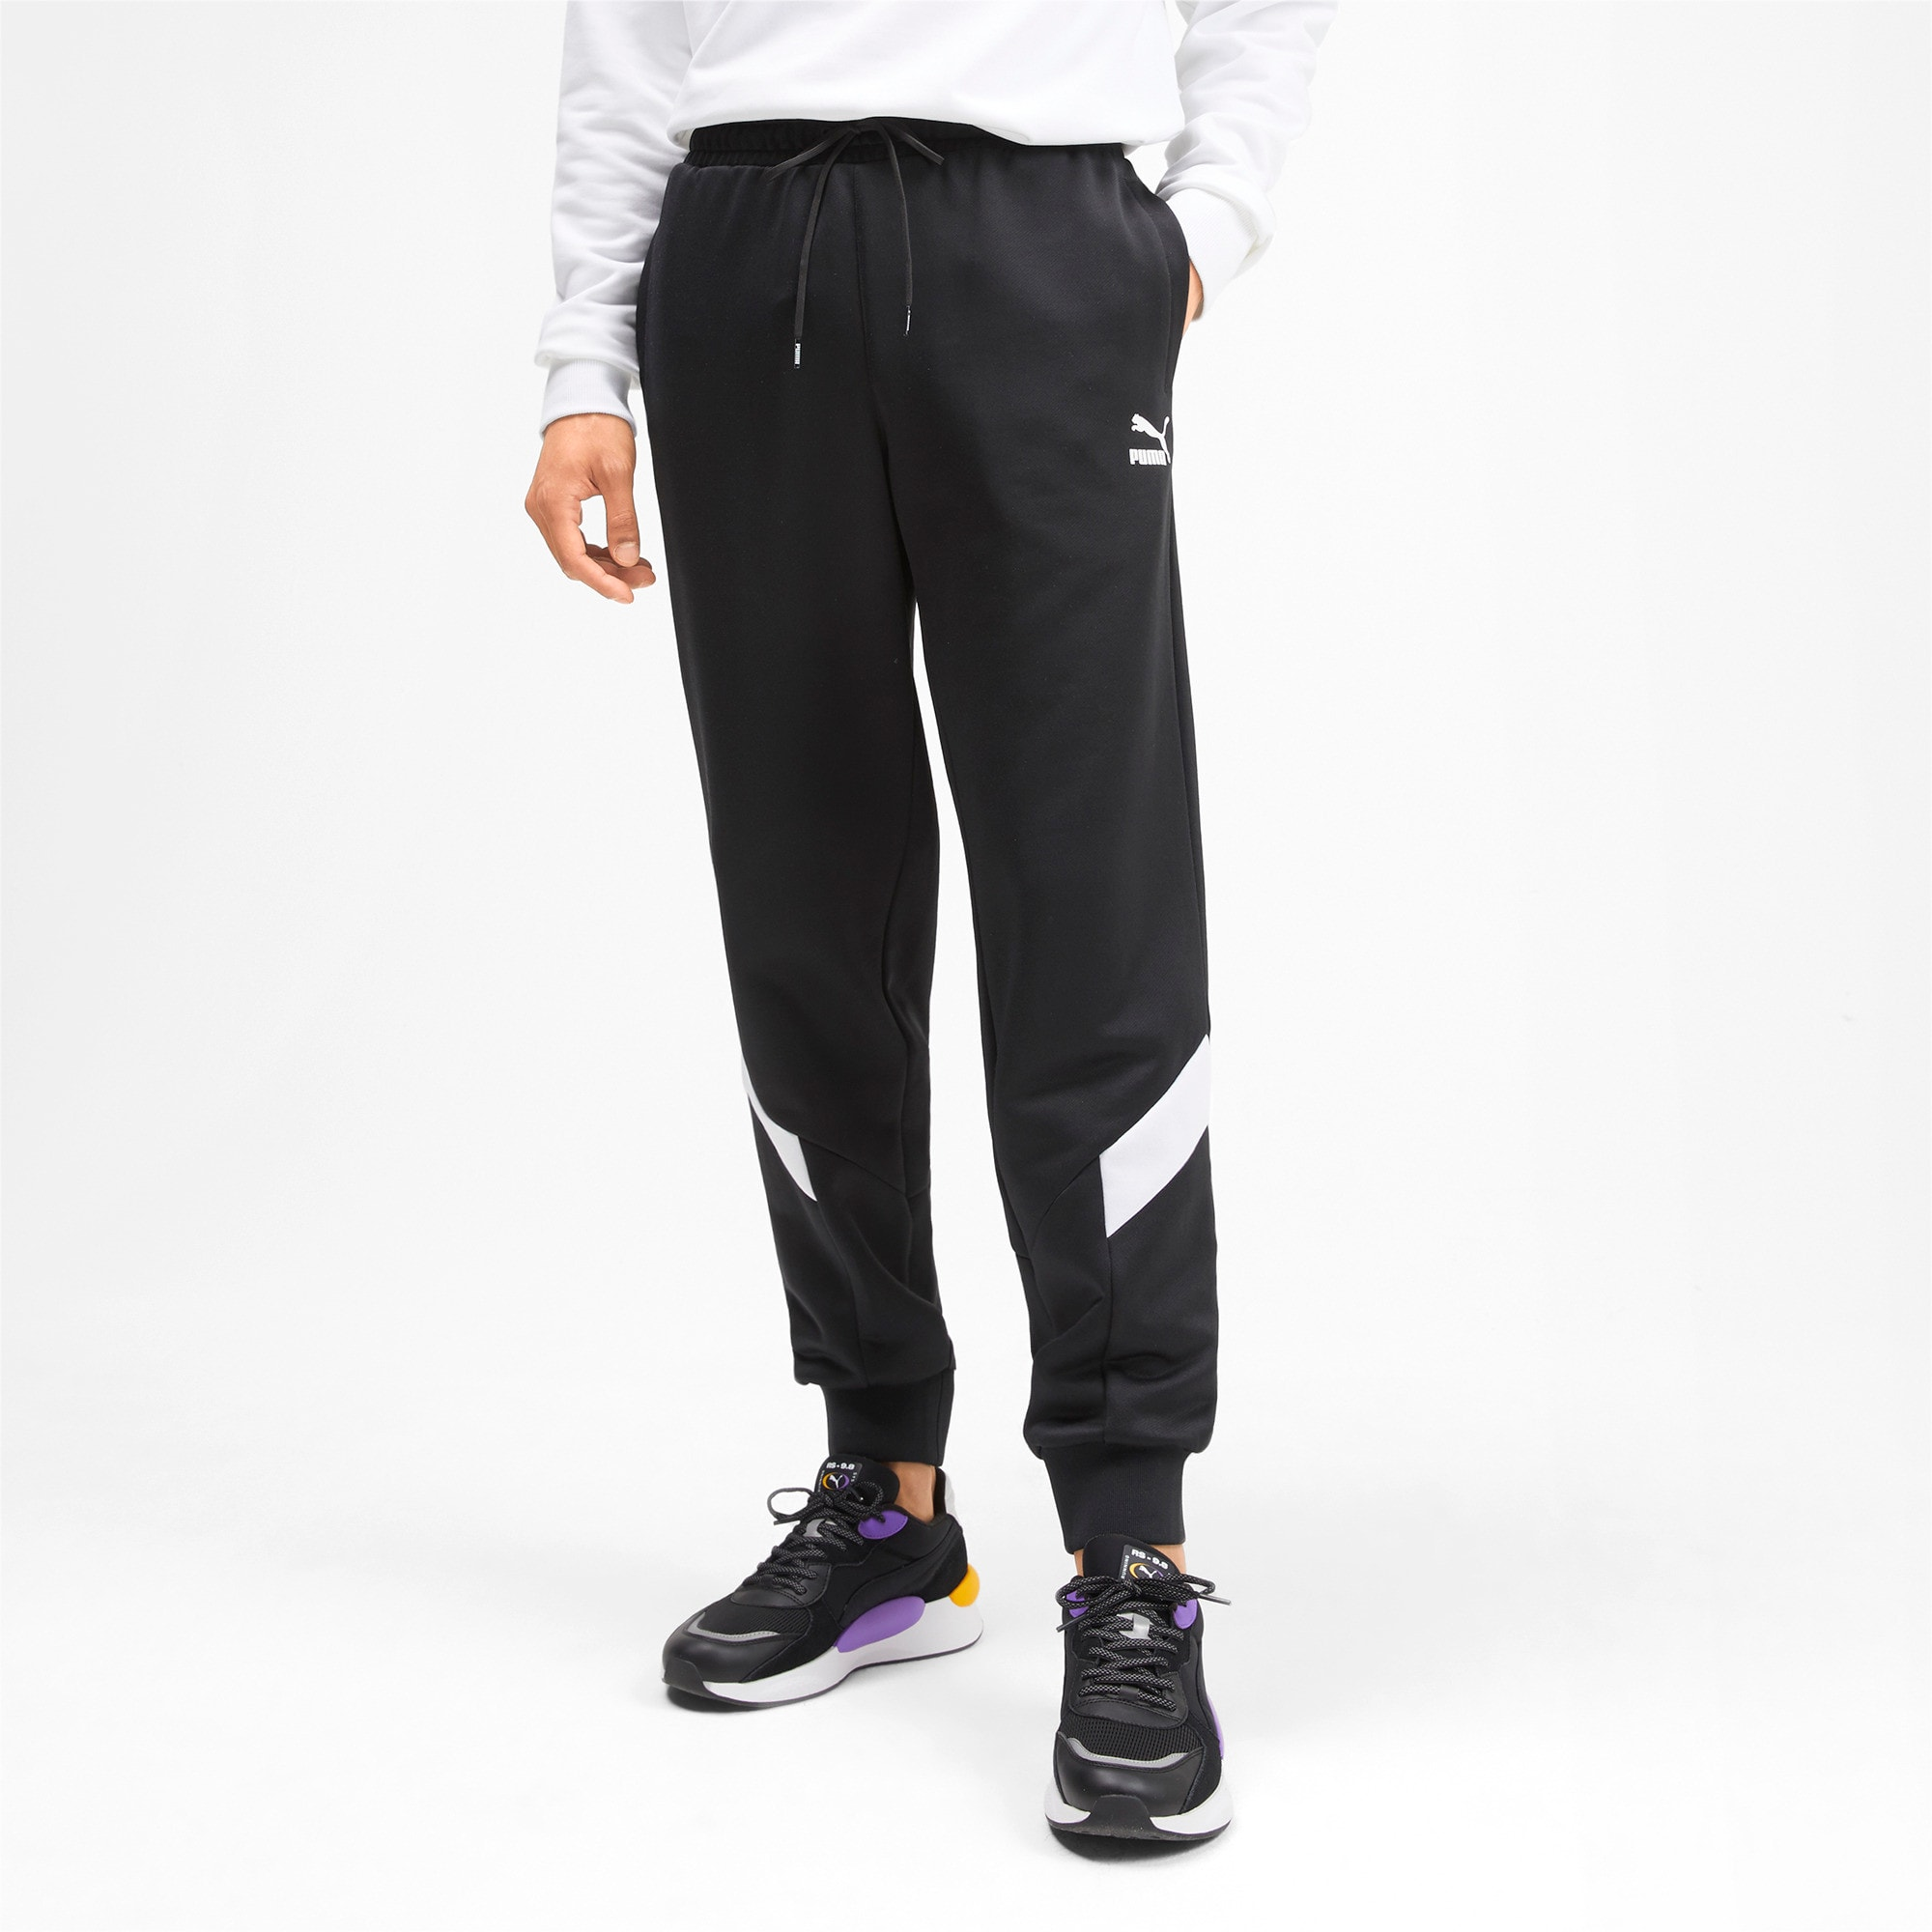 Iconic MCS Knitted Men's Track Pants, Puma Black, large